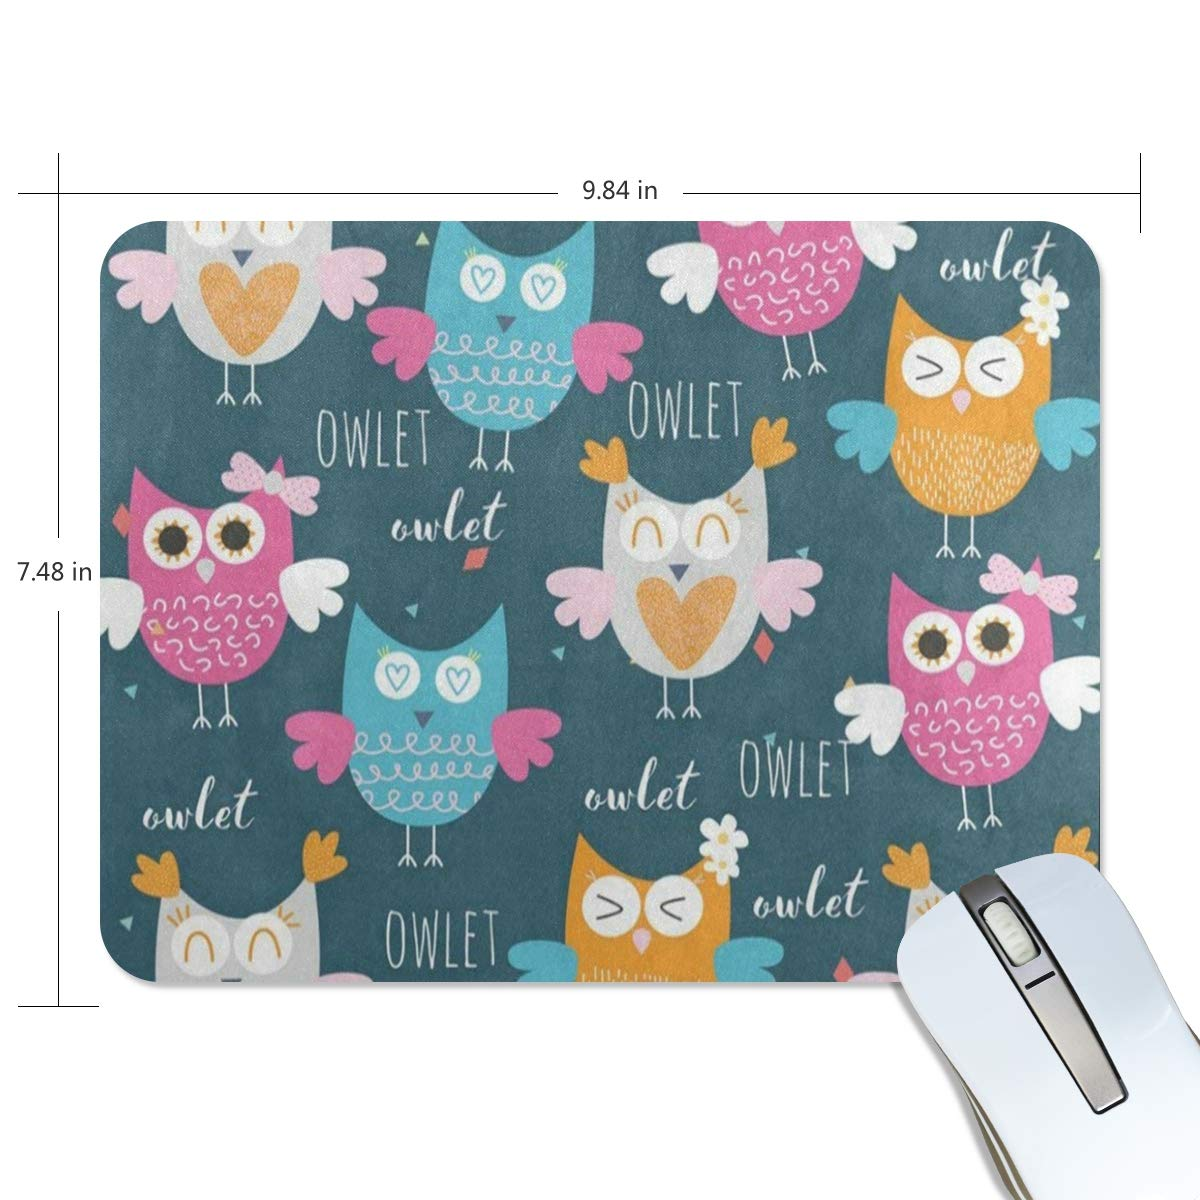 Amazon.com : Funny Mouse Pad Personalized Happy Bird Owlet Colorful Rectangle Shape for Office Computer Work (9.84 x 7.48 inch) : Office Products